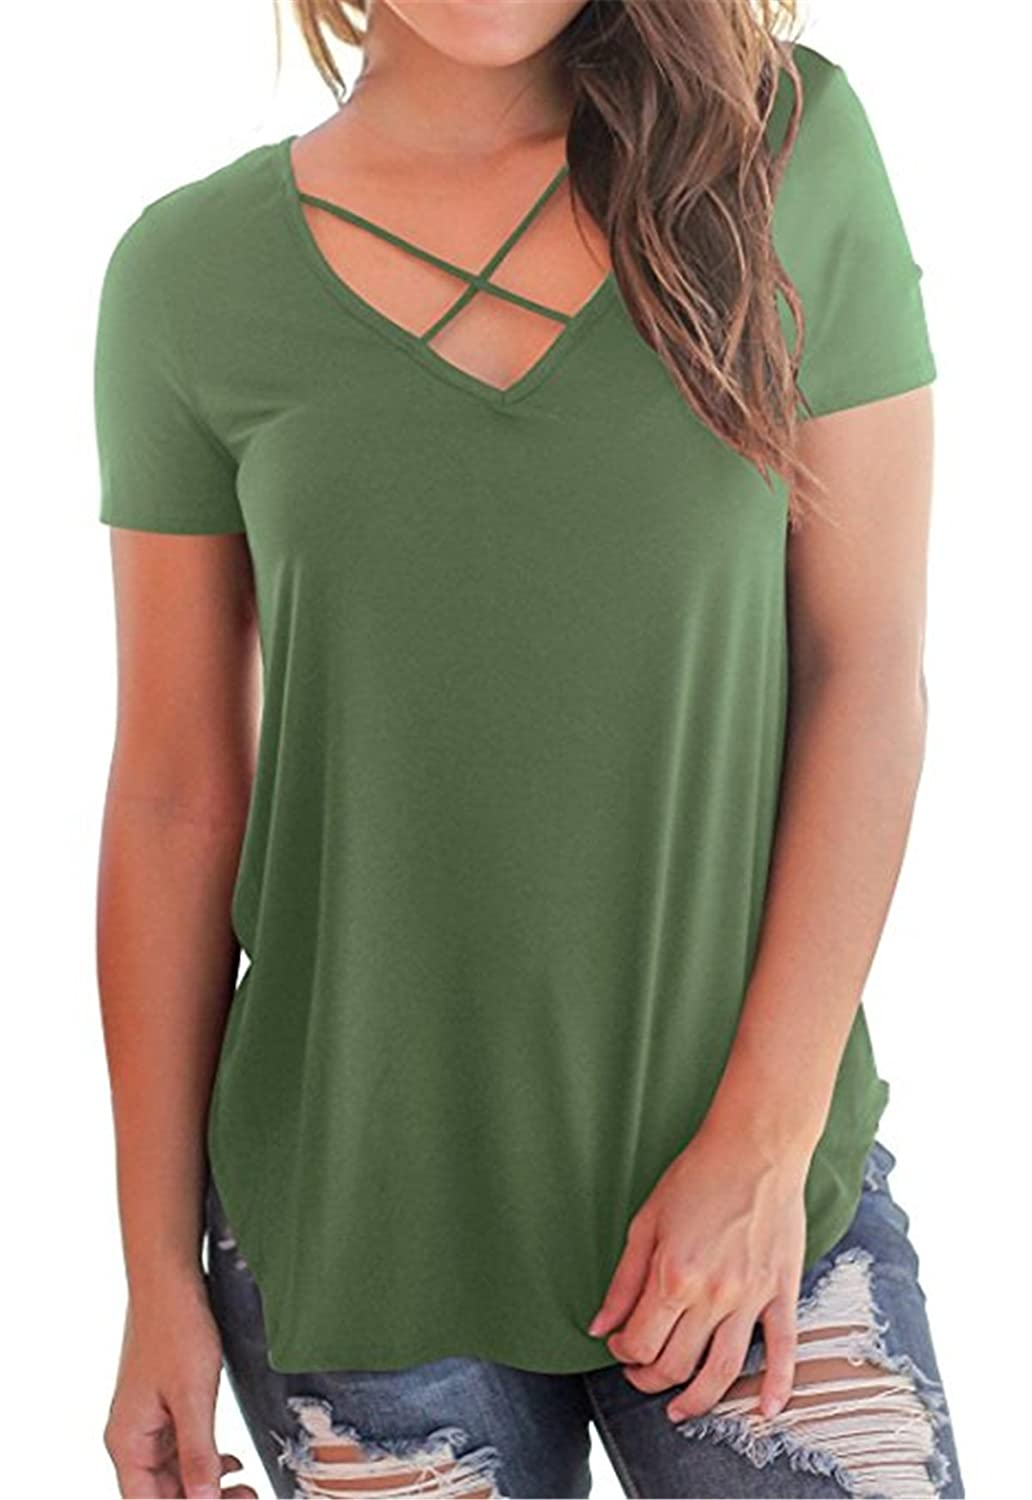 Aiyibao Women's Casual Short Sleeve Solid Criss Cross Front V-Neck T-Shirt Tops